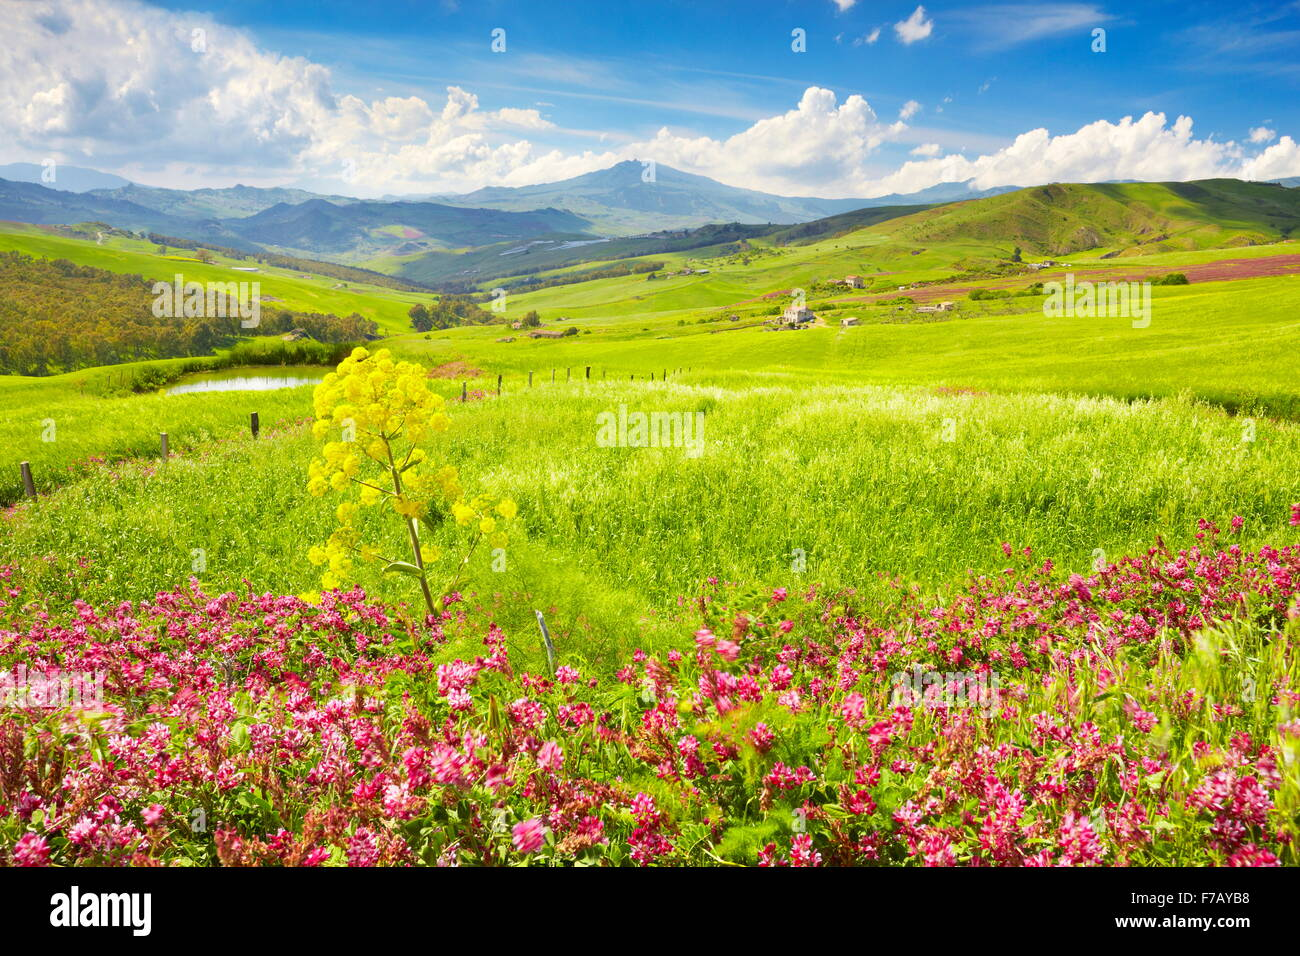 Spring landscape with flowers in Central Sicily, Sicily Island, Italy - Stock Image